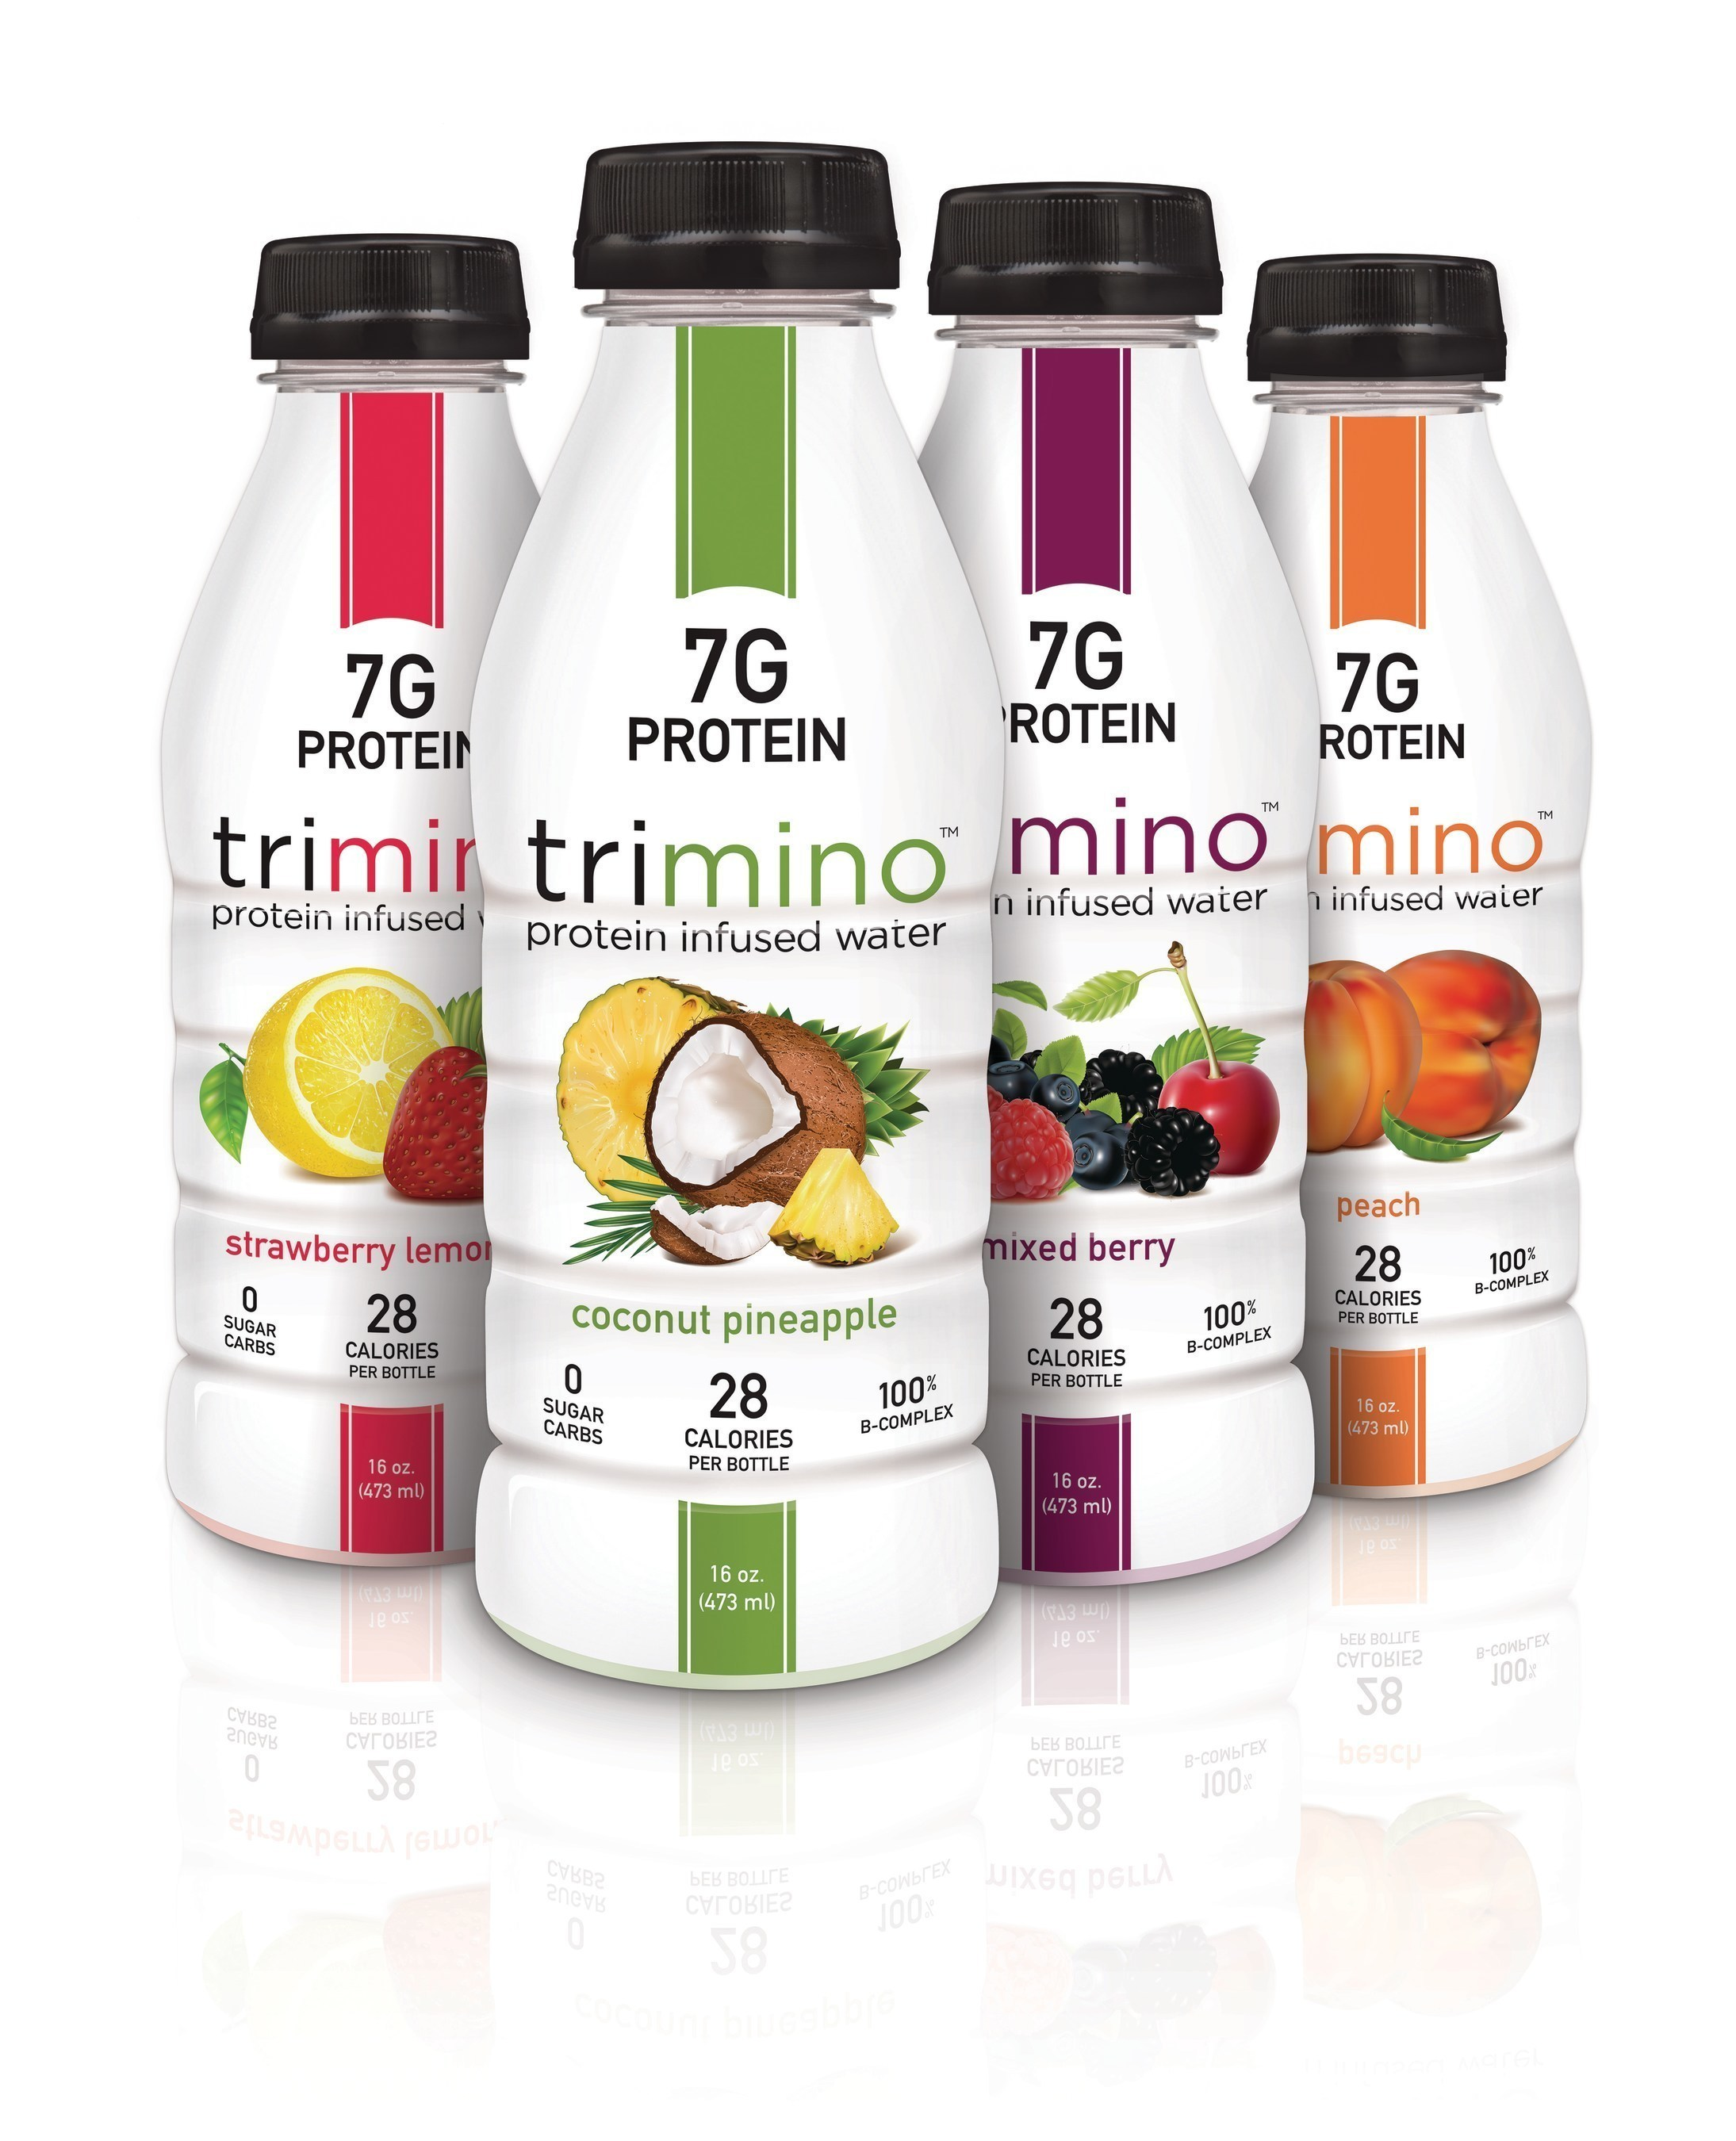 "trimino protein-infused water ""Beats Water, Everyday"" with 7gs of whey protein, B-complex vitamins, 0 sugar, 0 carbs and only 28 calories. trimino is available in 4 flavors and simply delicious."